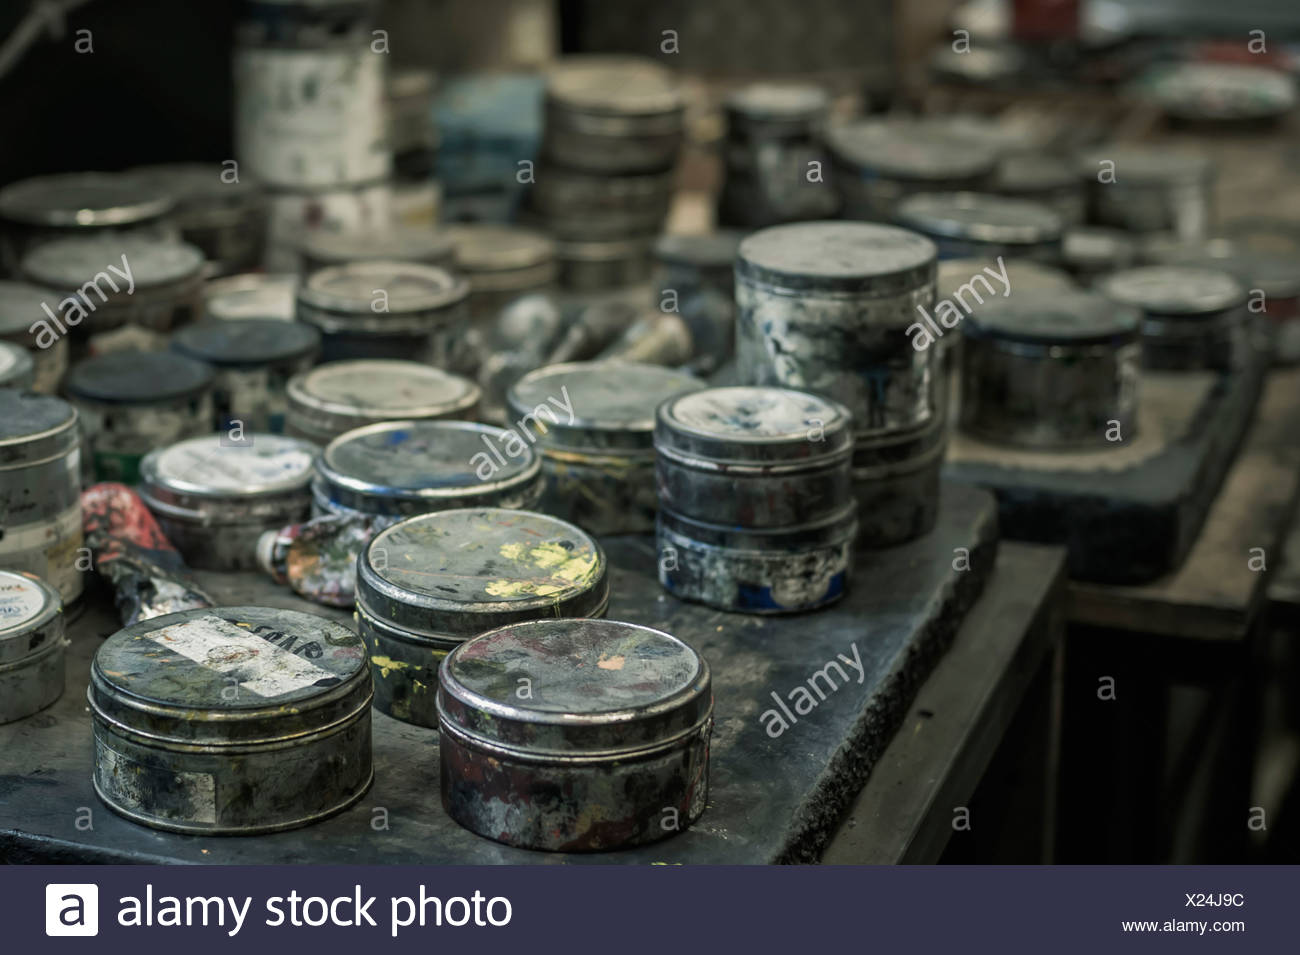 Cans in a printing house - Stock Image